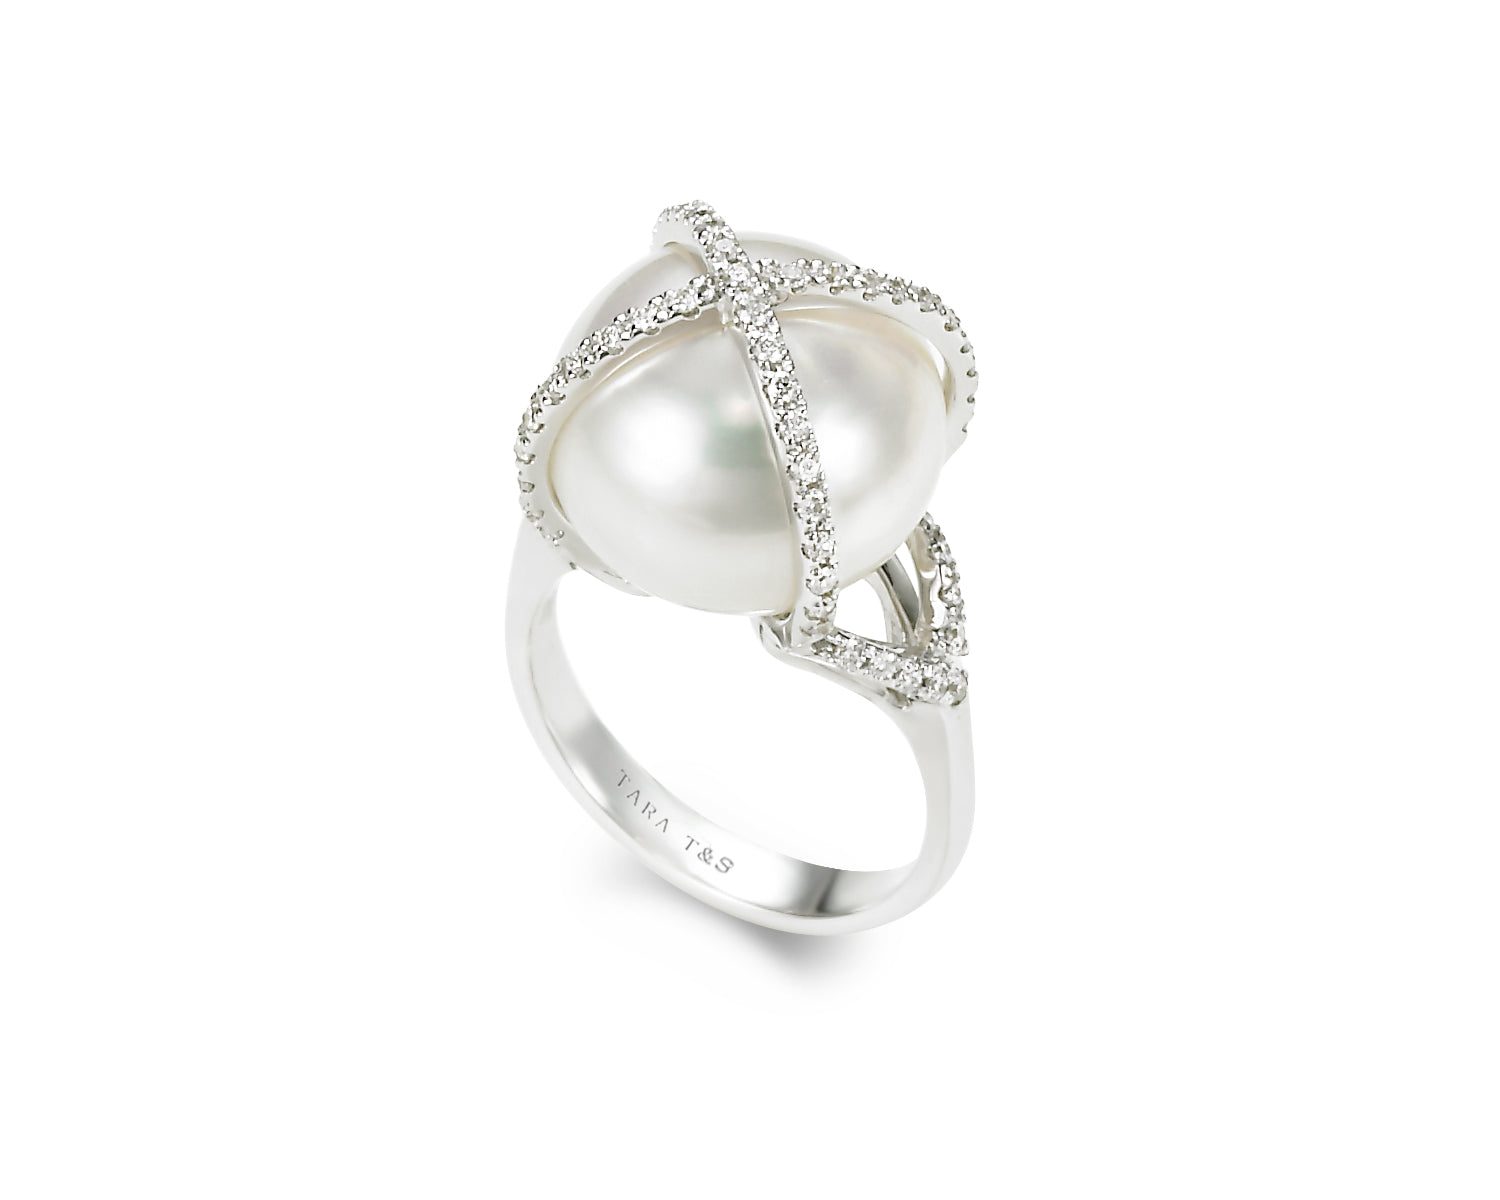 14-16mm White South Sea Pearl and Diamomd Ring